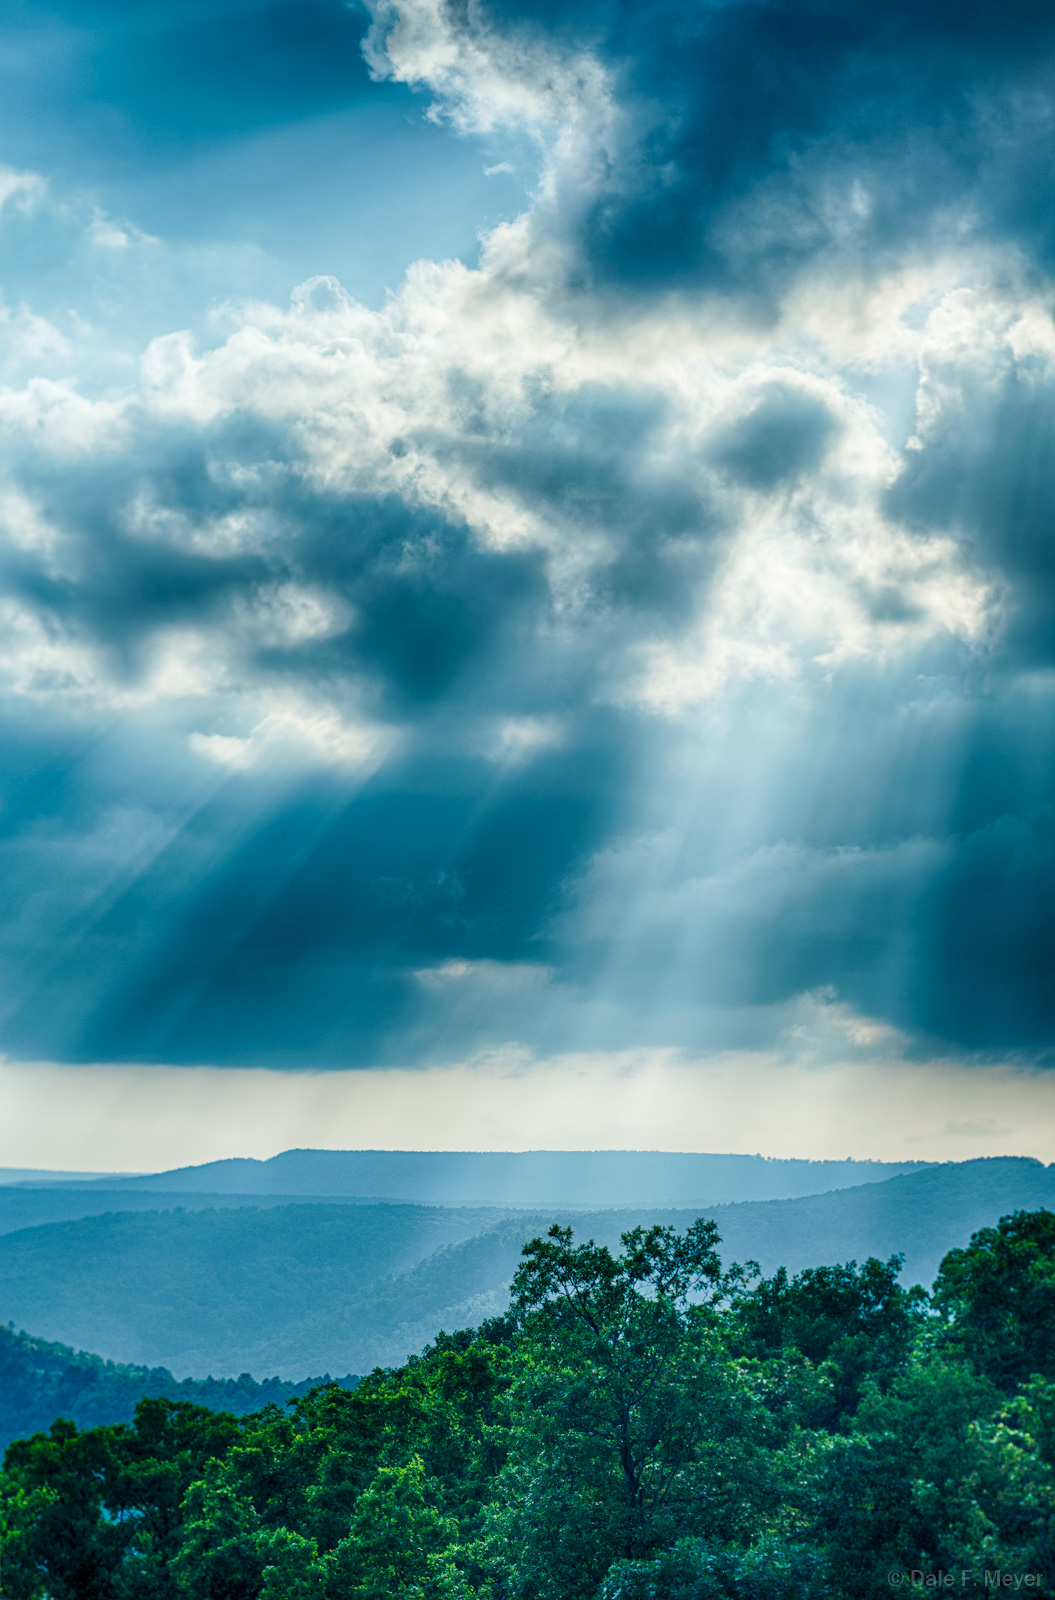 Boston Mountains,Clouds and Light,Crepuscular rays,Mountains and Overlooks Gallerie,North West Arkansas,spring 2015, photo